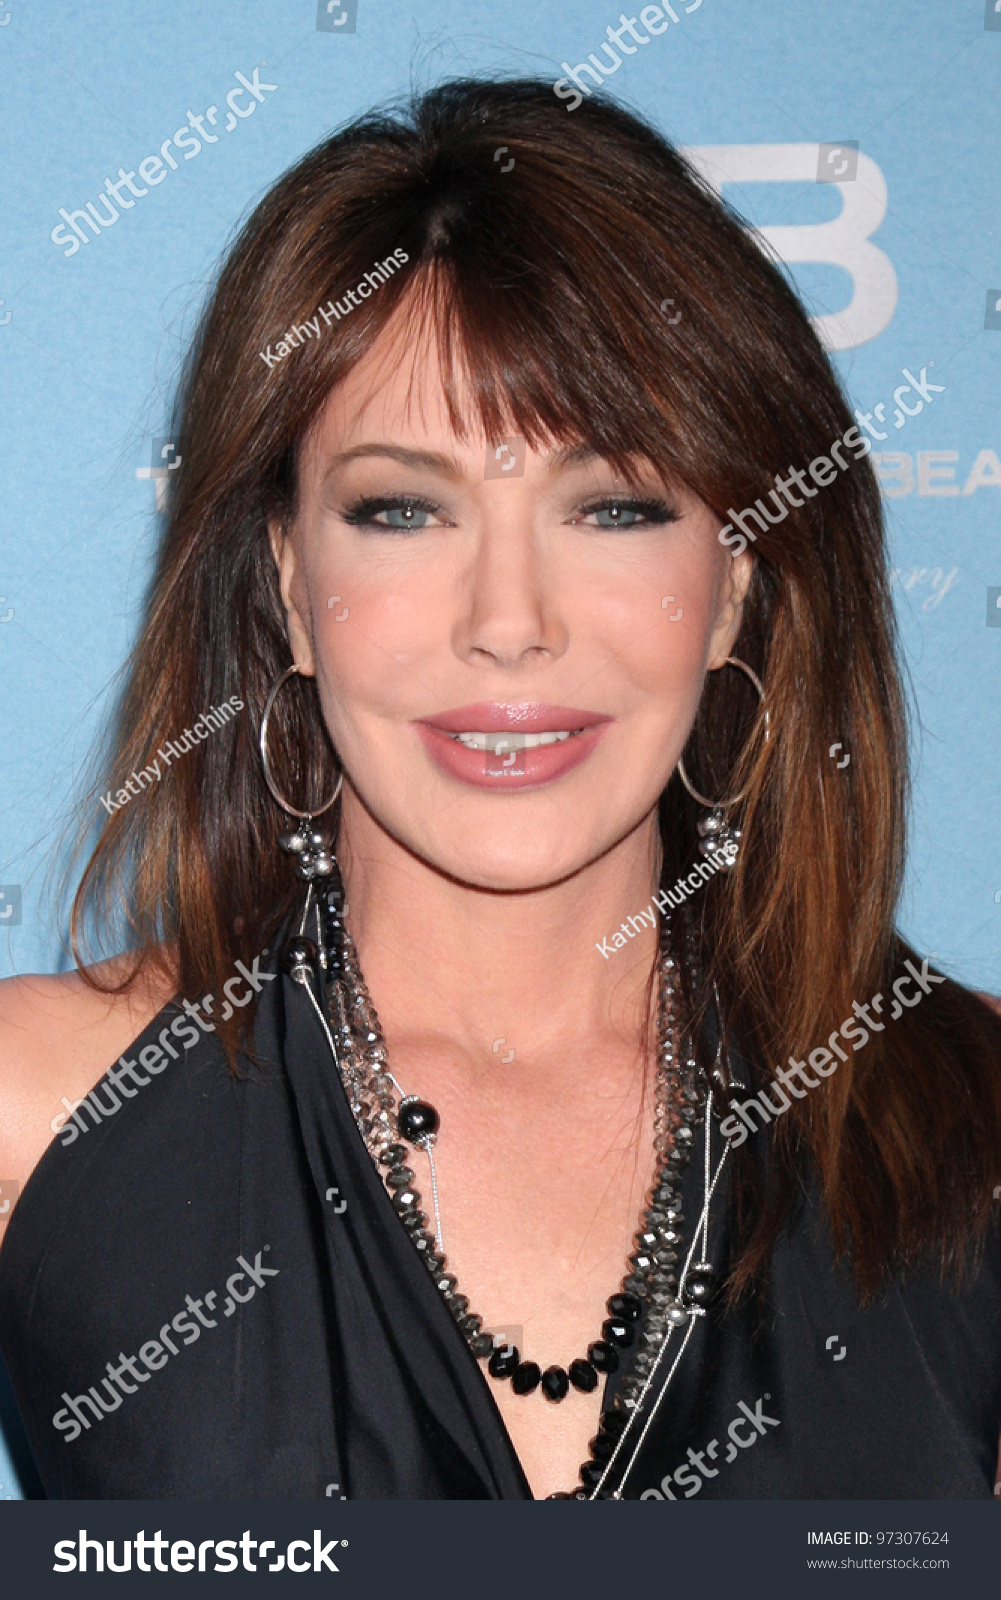 Los angeles mar 10 hunter tylo stock photo 97307624 for Beautiful in los angeles